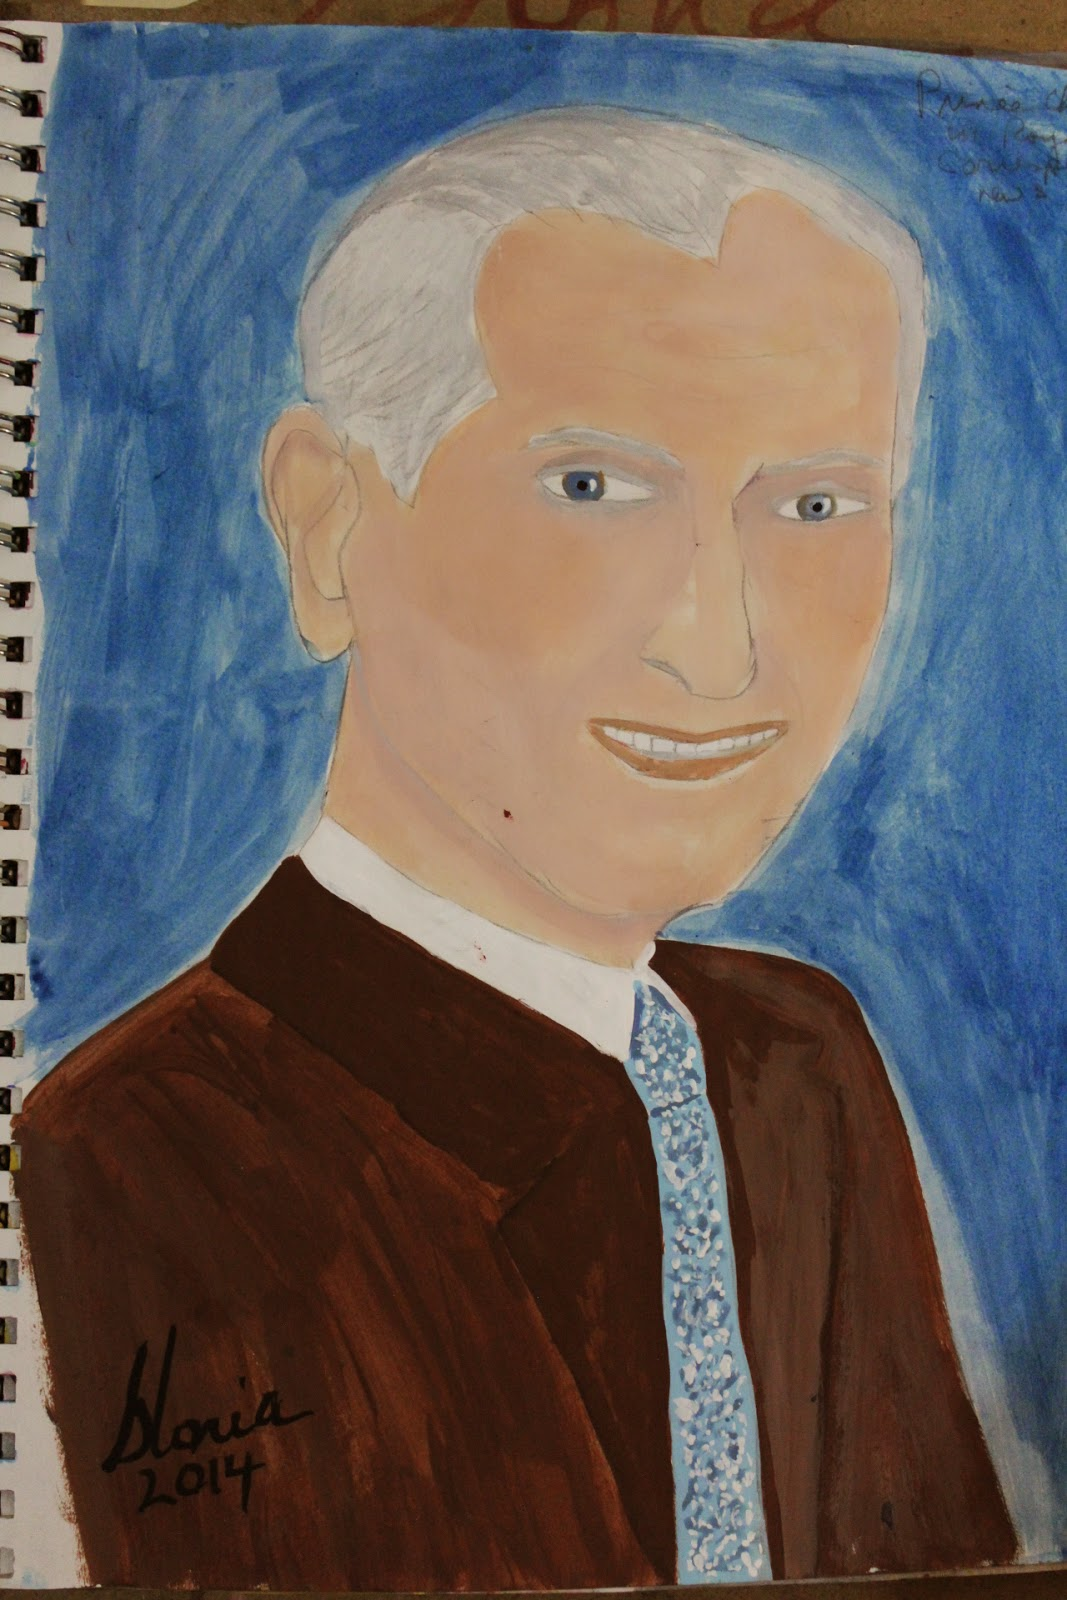 Prince Charles 2014 sketch by Gloria Poole of Missouri; 7-May-2014; acrylics